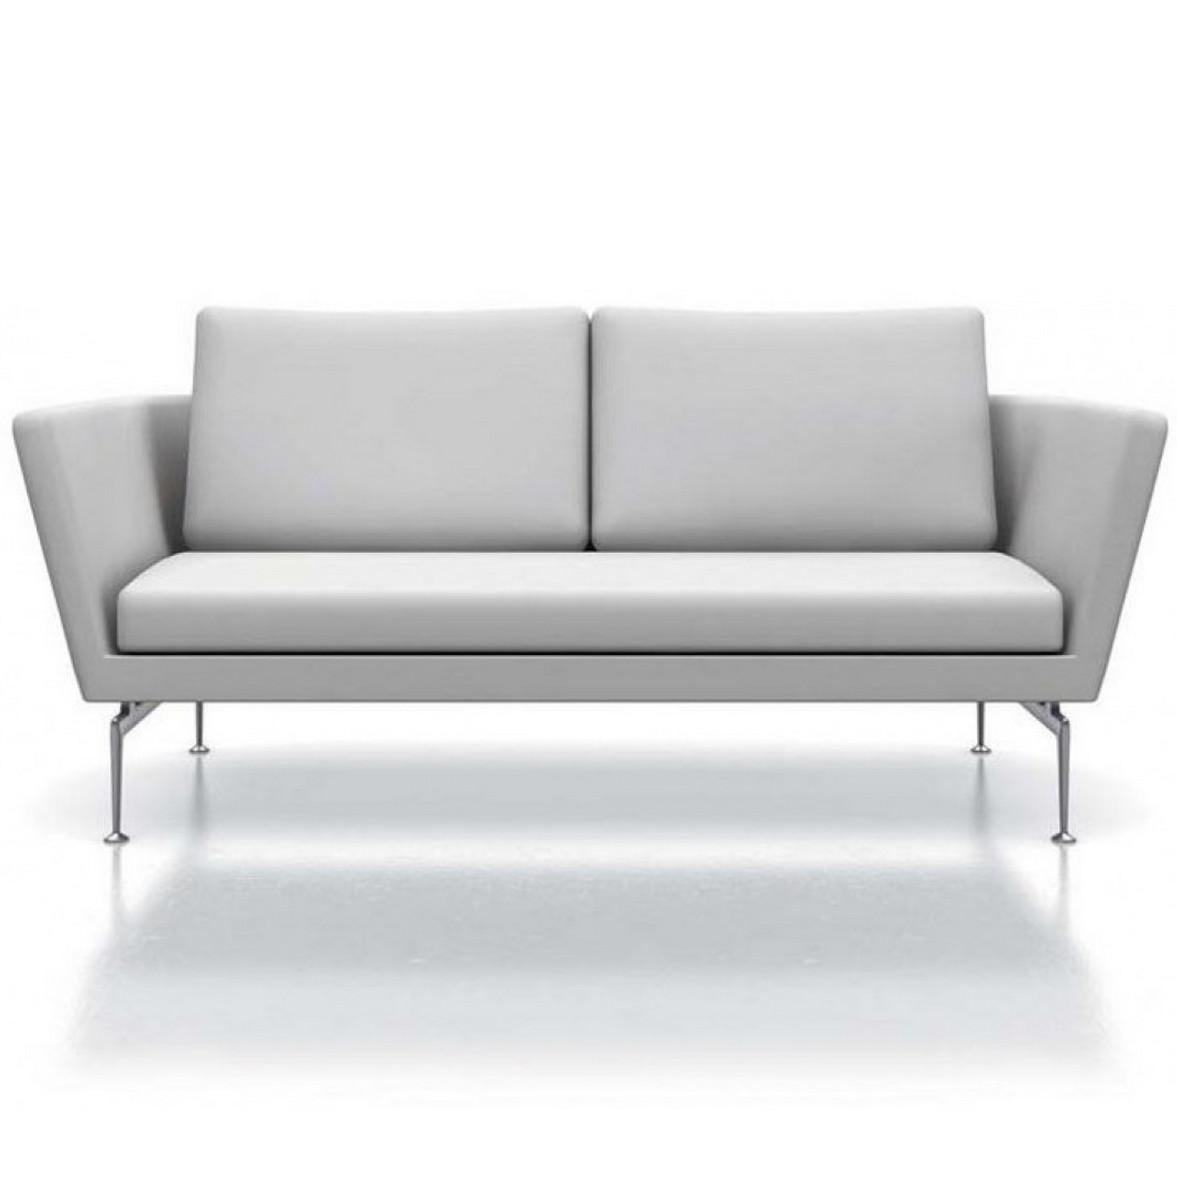 Vitra Suita Two Seater Firm Sofa Modern Design